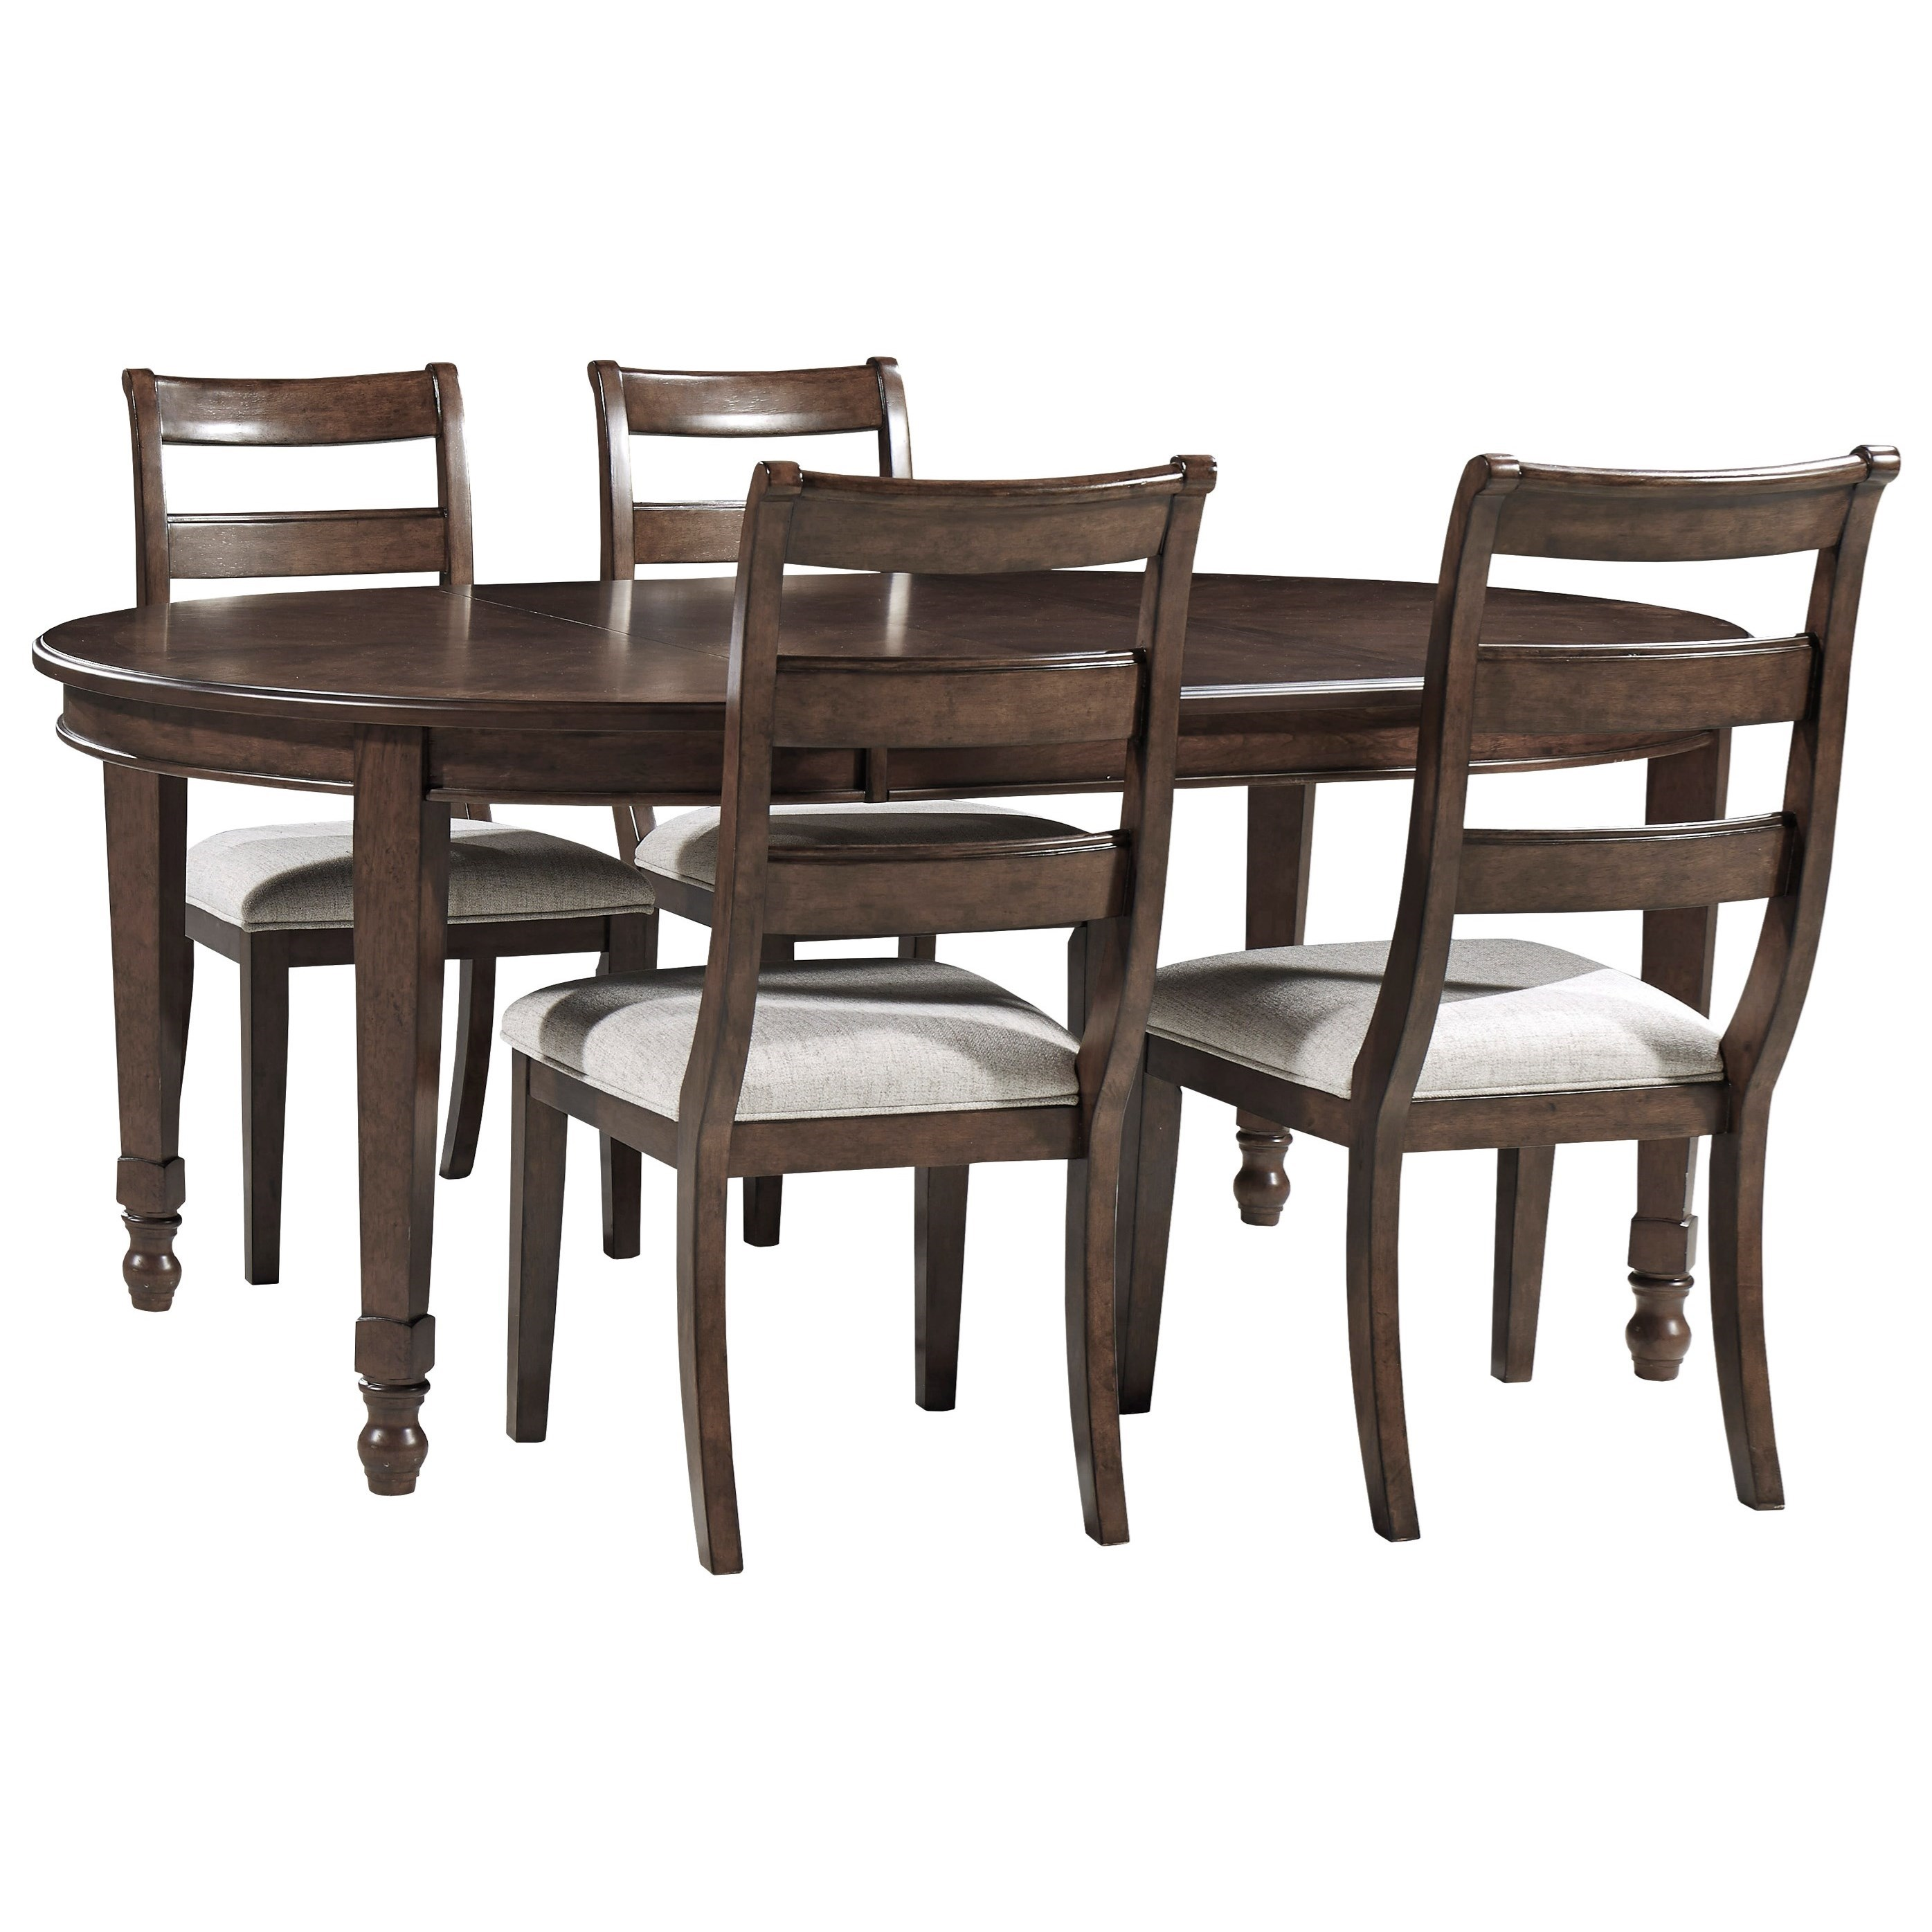 Adinton 5-Piece Table and Chair Set by Signature Design by Ashley at Sparks HomeStore